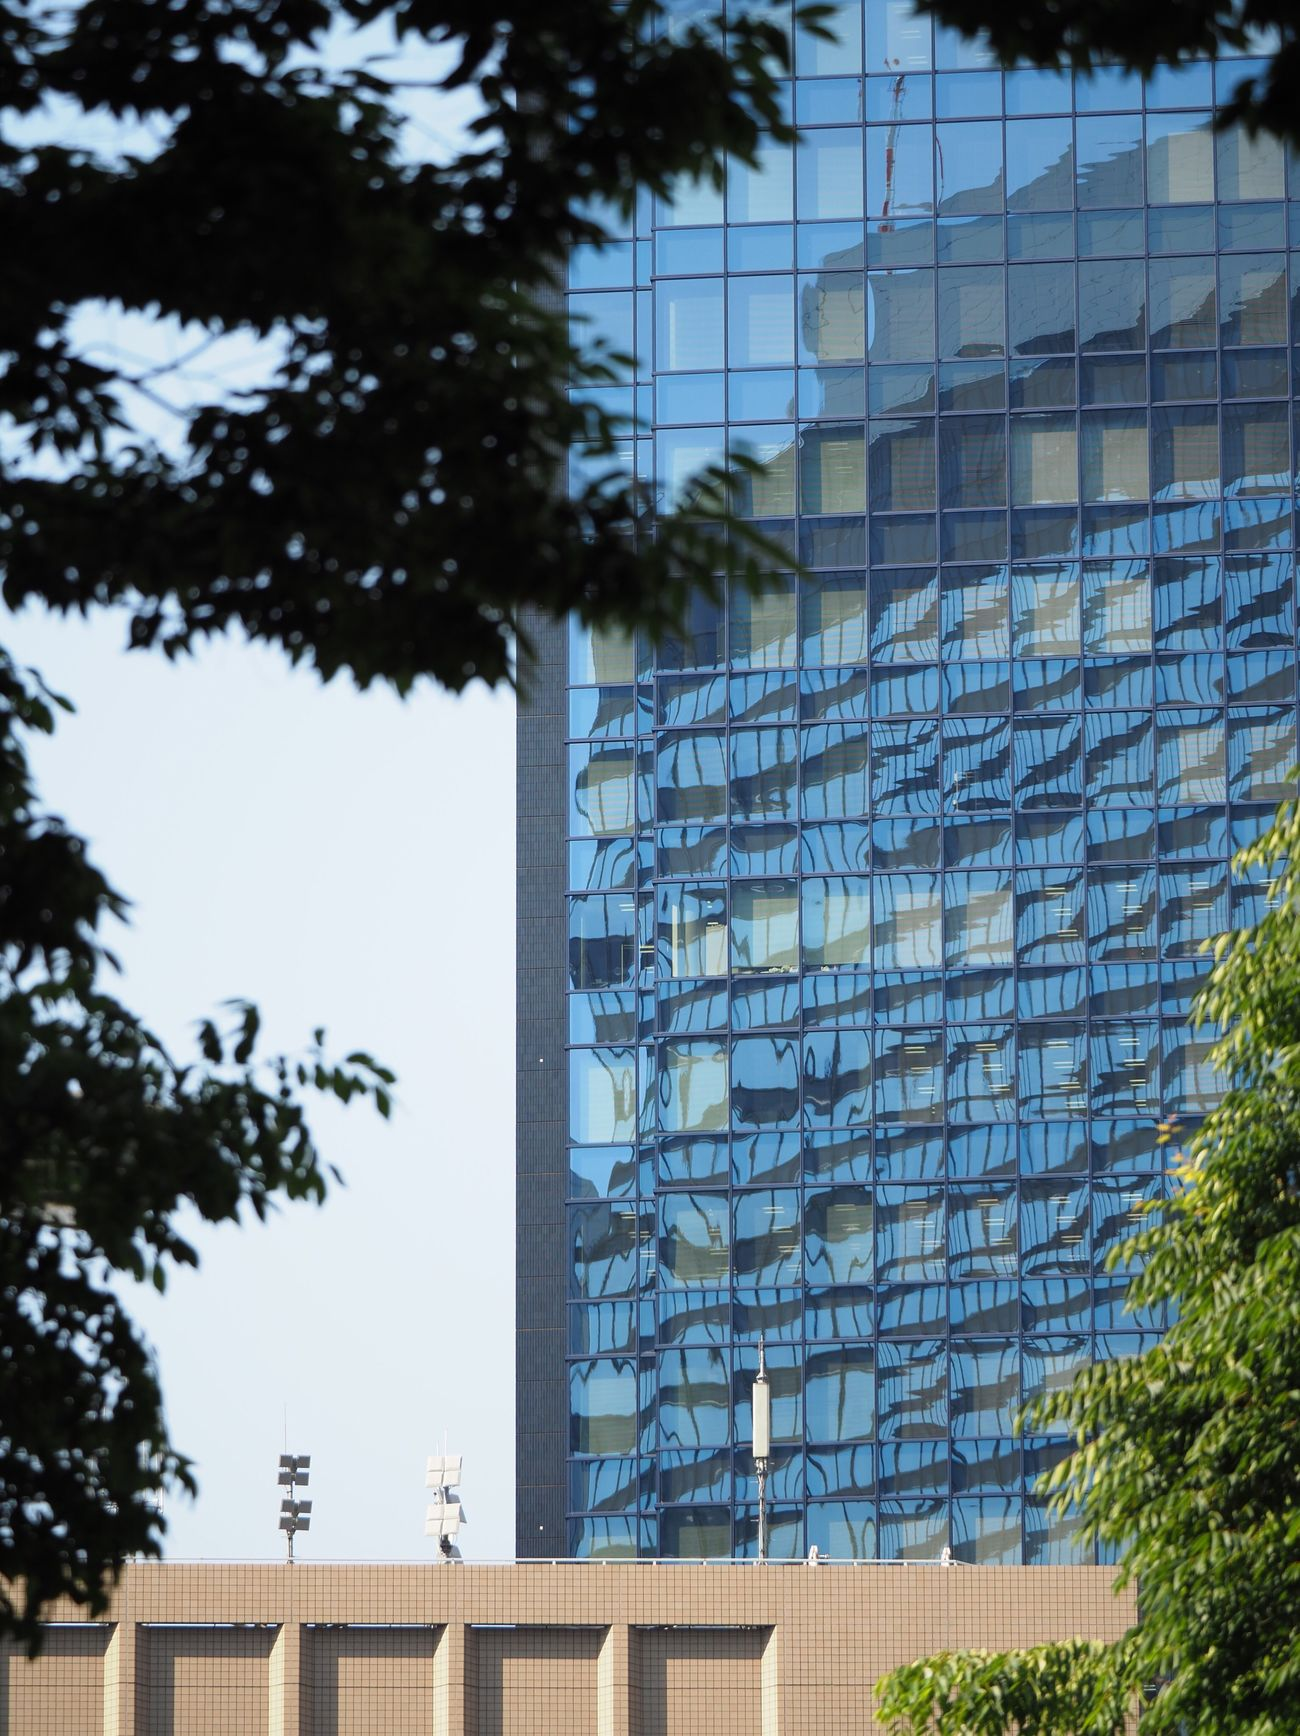 Reflections In The Glass Windows Reflection Architecture Building Exterior The Purist (no Edit, No Filter) The Architect - 2017 EyeEm Awards EyeEm Best Shots - Architecture EyeEm Best Shots Snapshot Taking Photos Walking Around お写ん歩